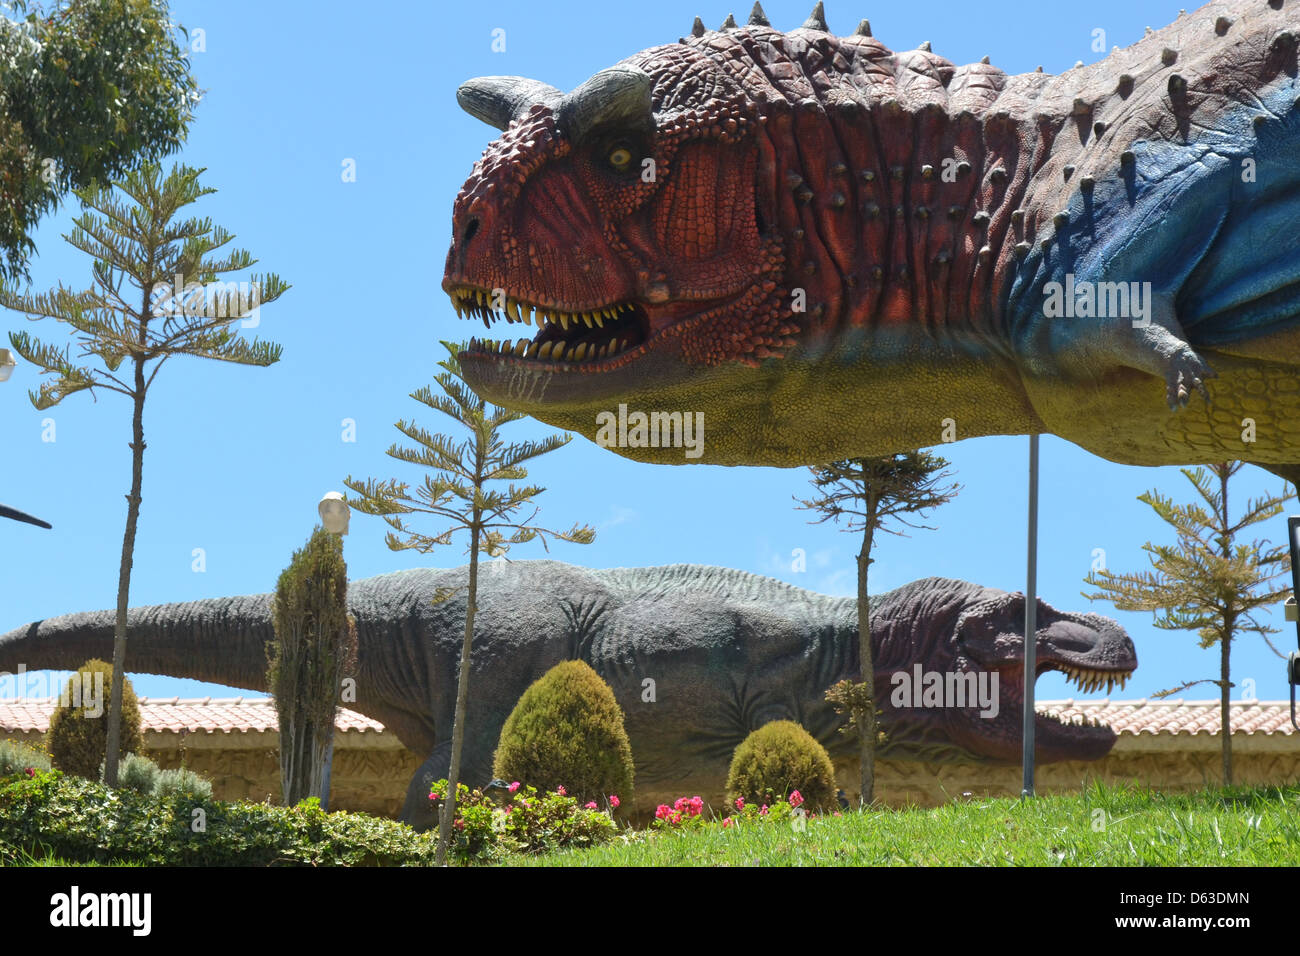 Parque Cretacico, Sucre - Dinosaur themed park in Bolivia with fossils and life-size statues Stock Photo